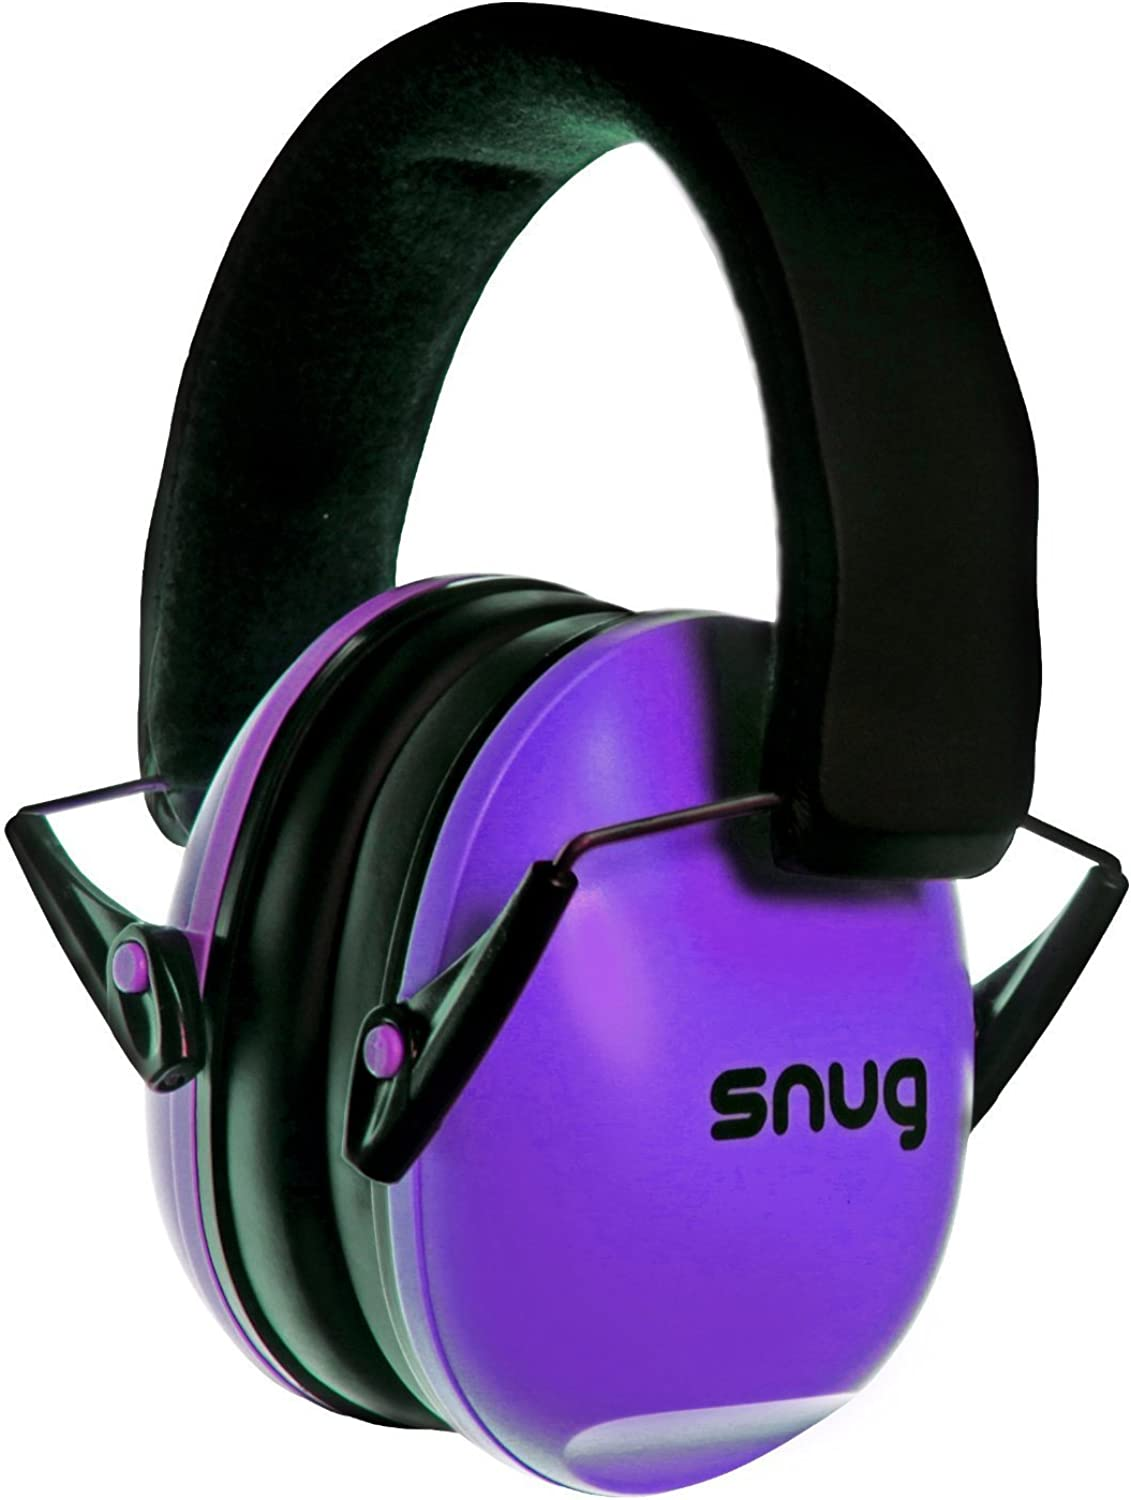 sound protection earmuffs//sensory comfort Baby //toddler ear defenders